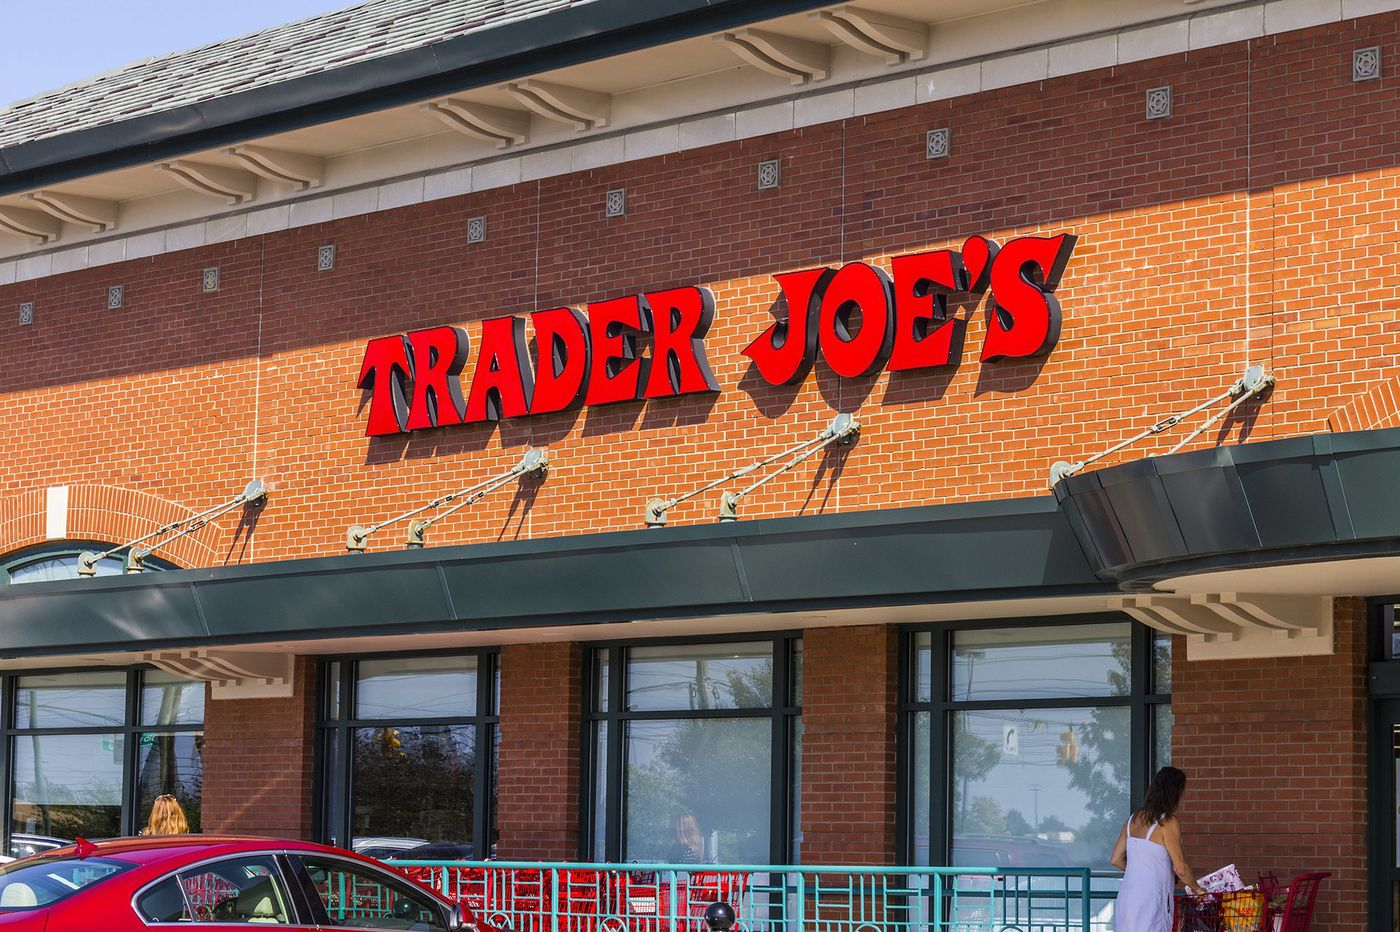 Hey, Trader Joe's: Less plastic with my food, please | Opinion